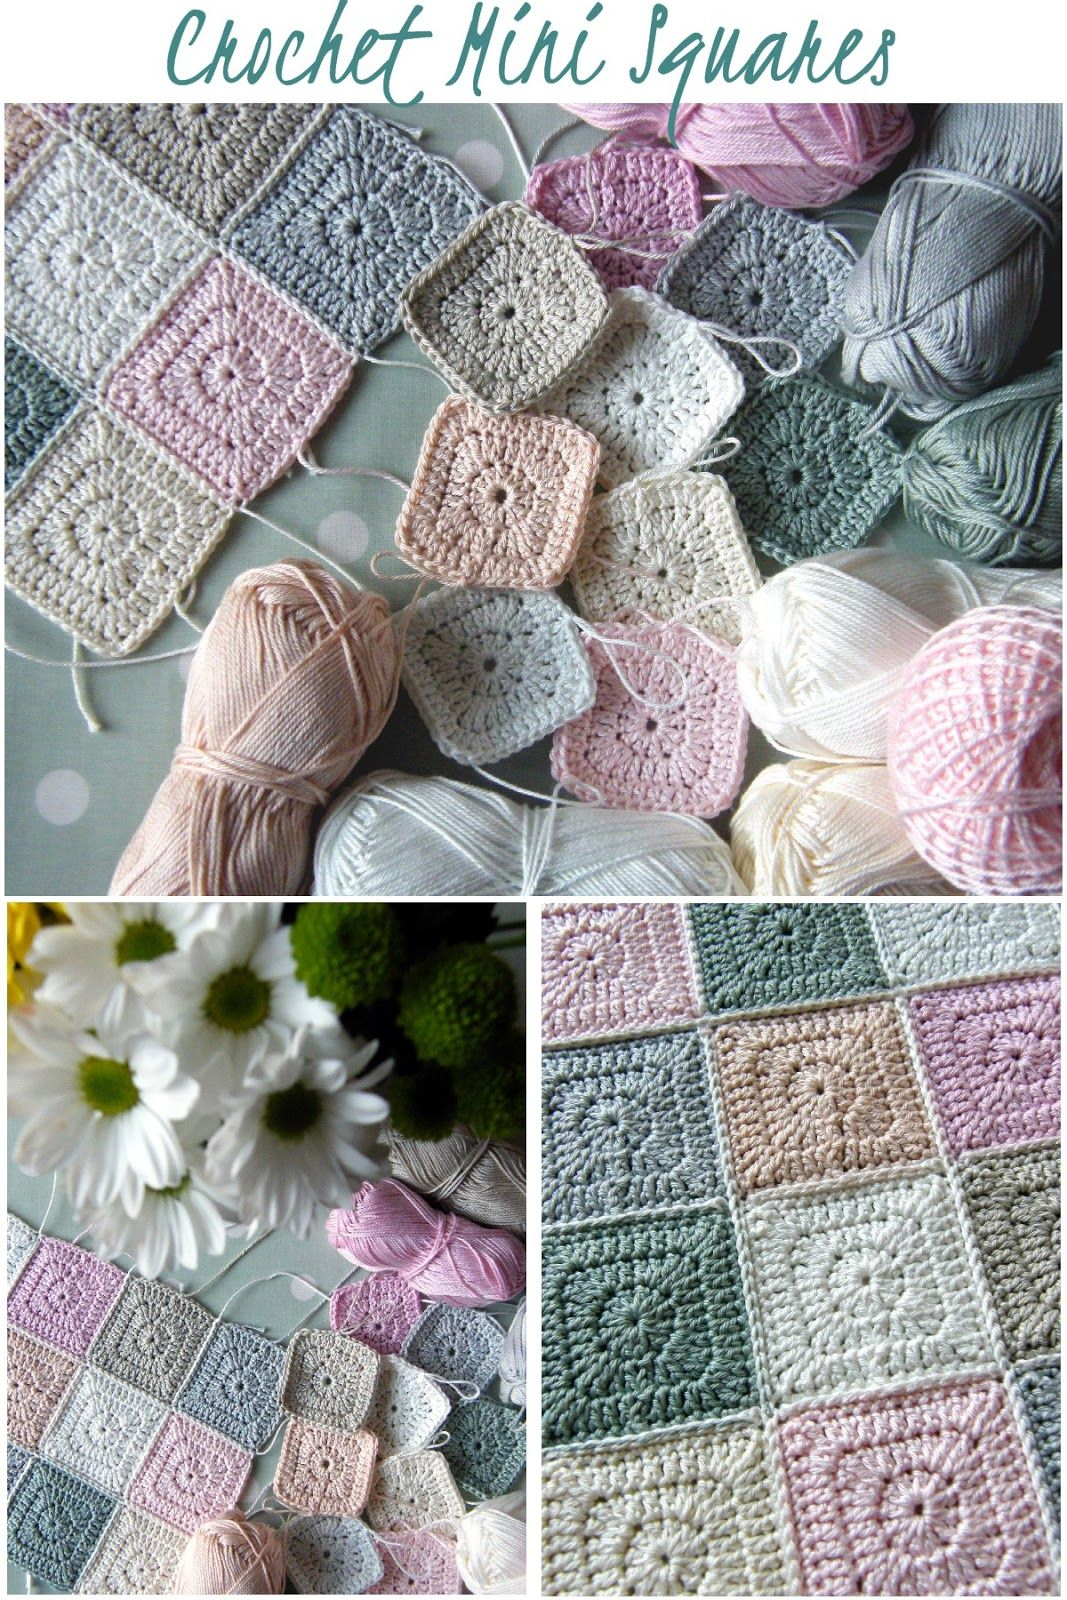 Solid granny square free crochet pattern granny square crochet crochet mini squares from jan eatons book crochet blocks for blankets throws afghans p first four rounds only bankloansurffo Choice Image